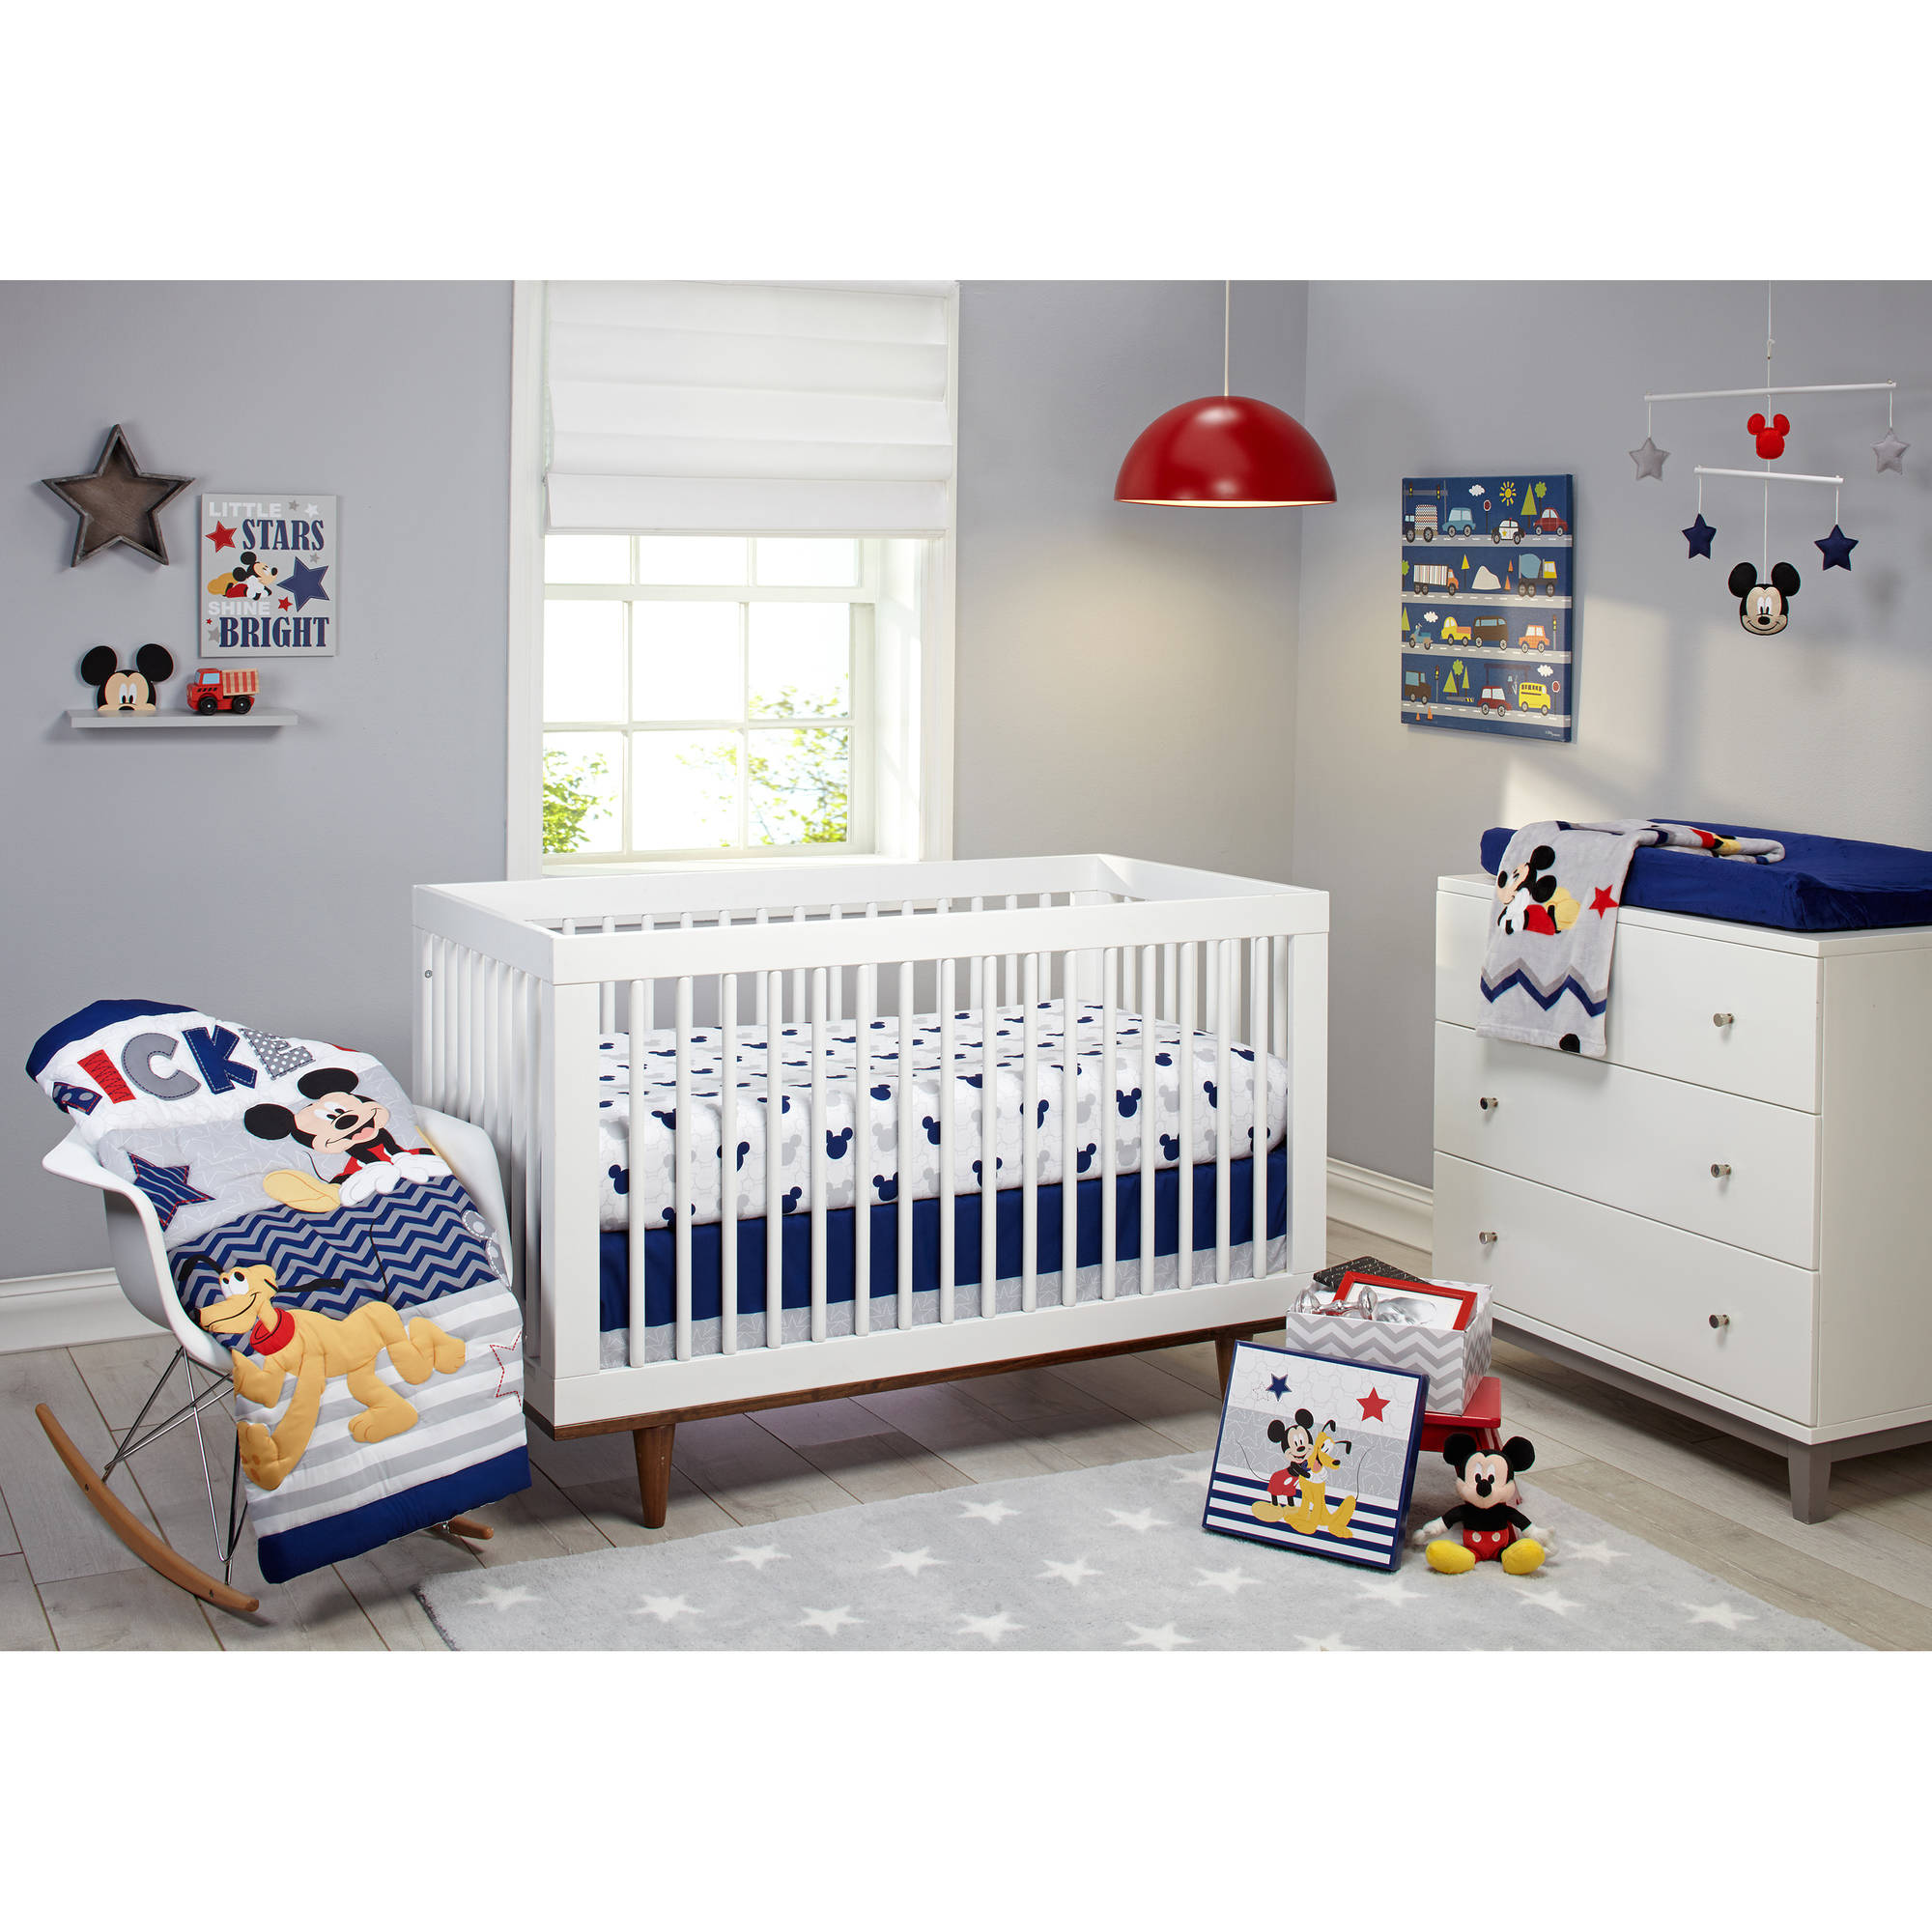 Disney Let S Go Mickey Ii 4 Piece Crib Bedding Set Walmart Com Walmart Com